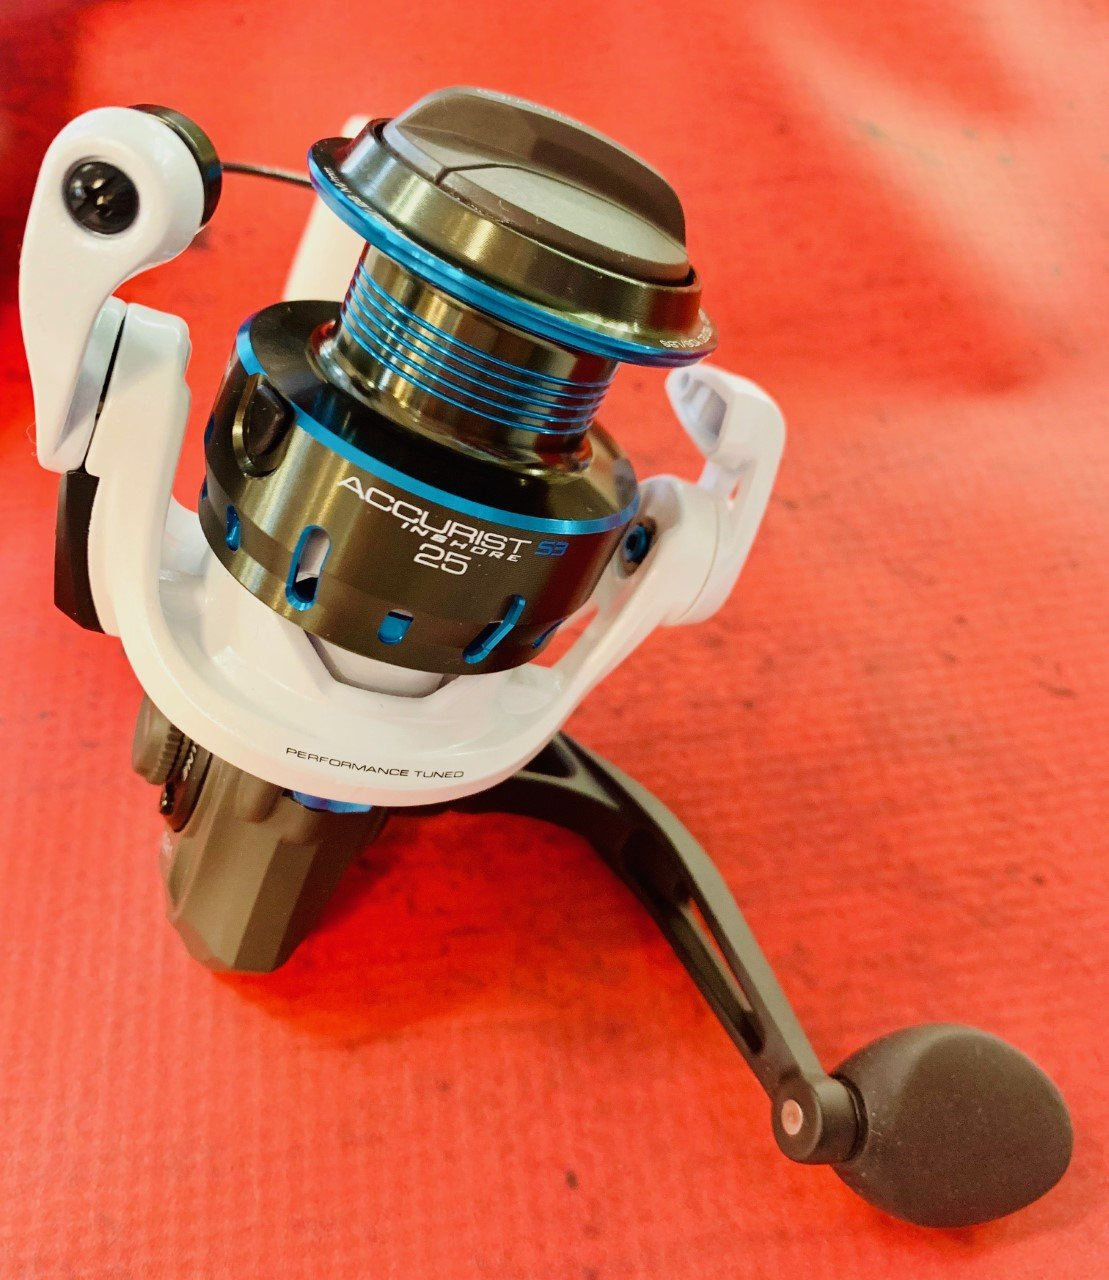 New Quantum Accurist Inshore Spinning Reel 30 taille 7BB 30 ATS sptbx 3